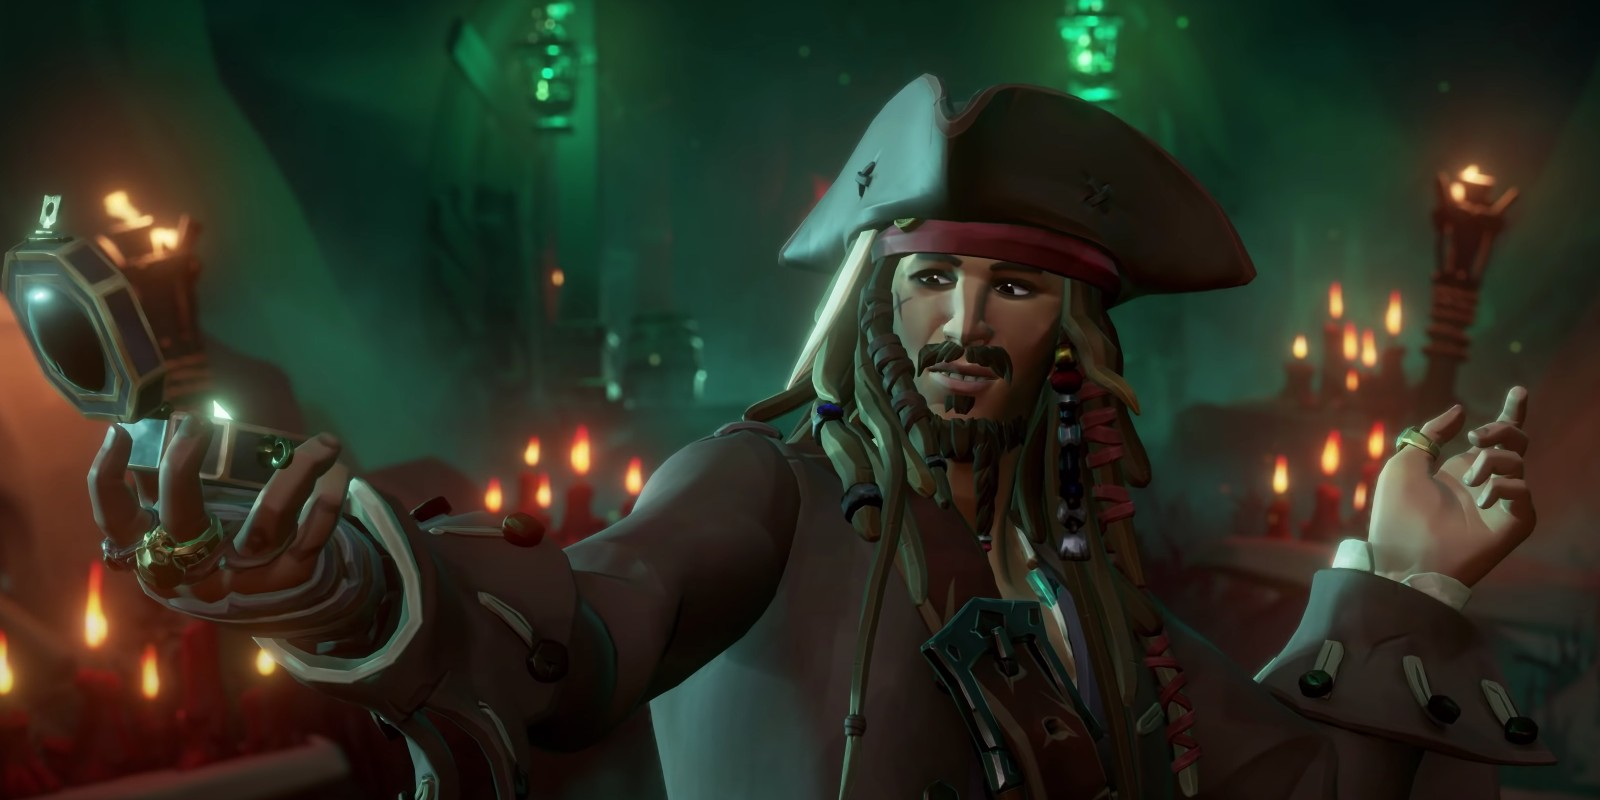 Jack Sparrow is coming to Sea of Thieves in Pirates of the Caribbean crossover